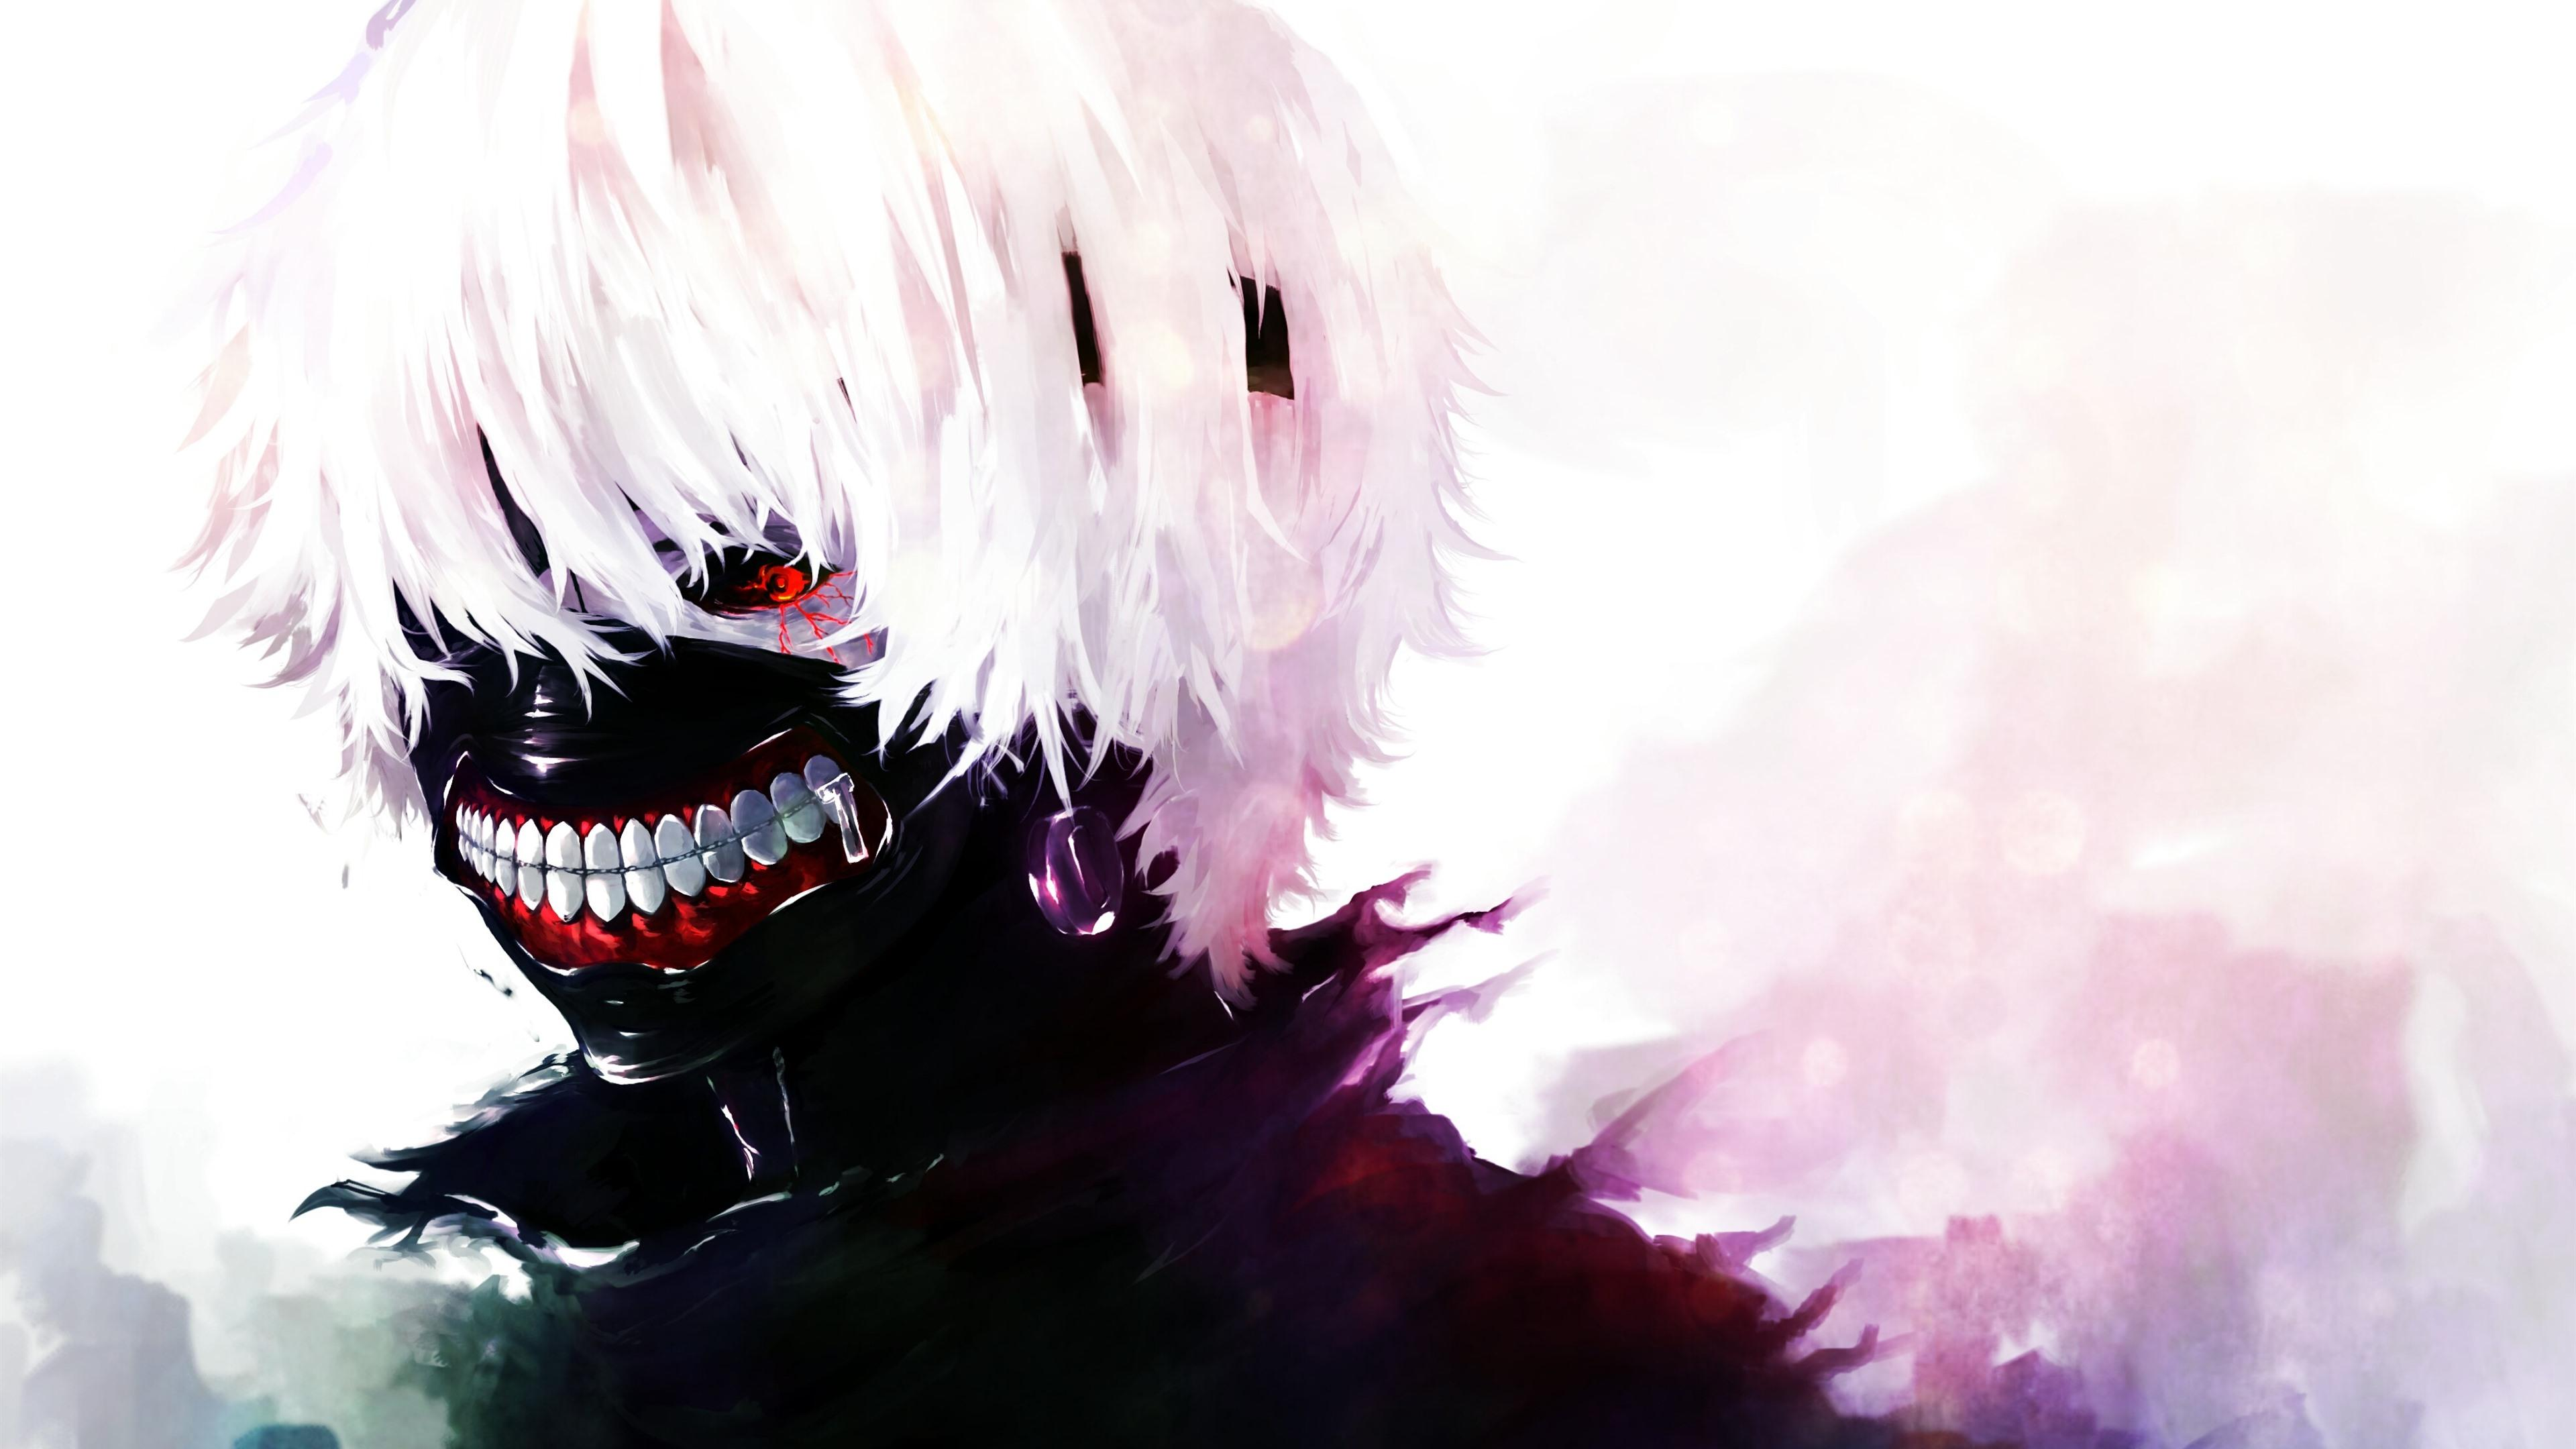 From tutorials, resources, and software recommendations, here's everything you need to start animating and creating video with the best tools out there. Tokyo Ghoul Anime Wallpapers - Wallpaper Cave